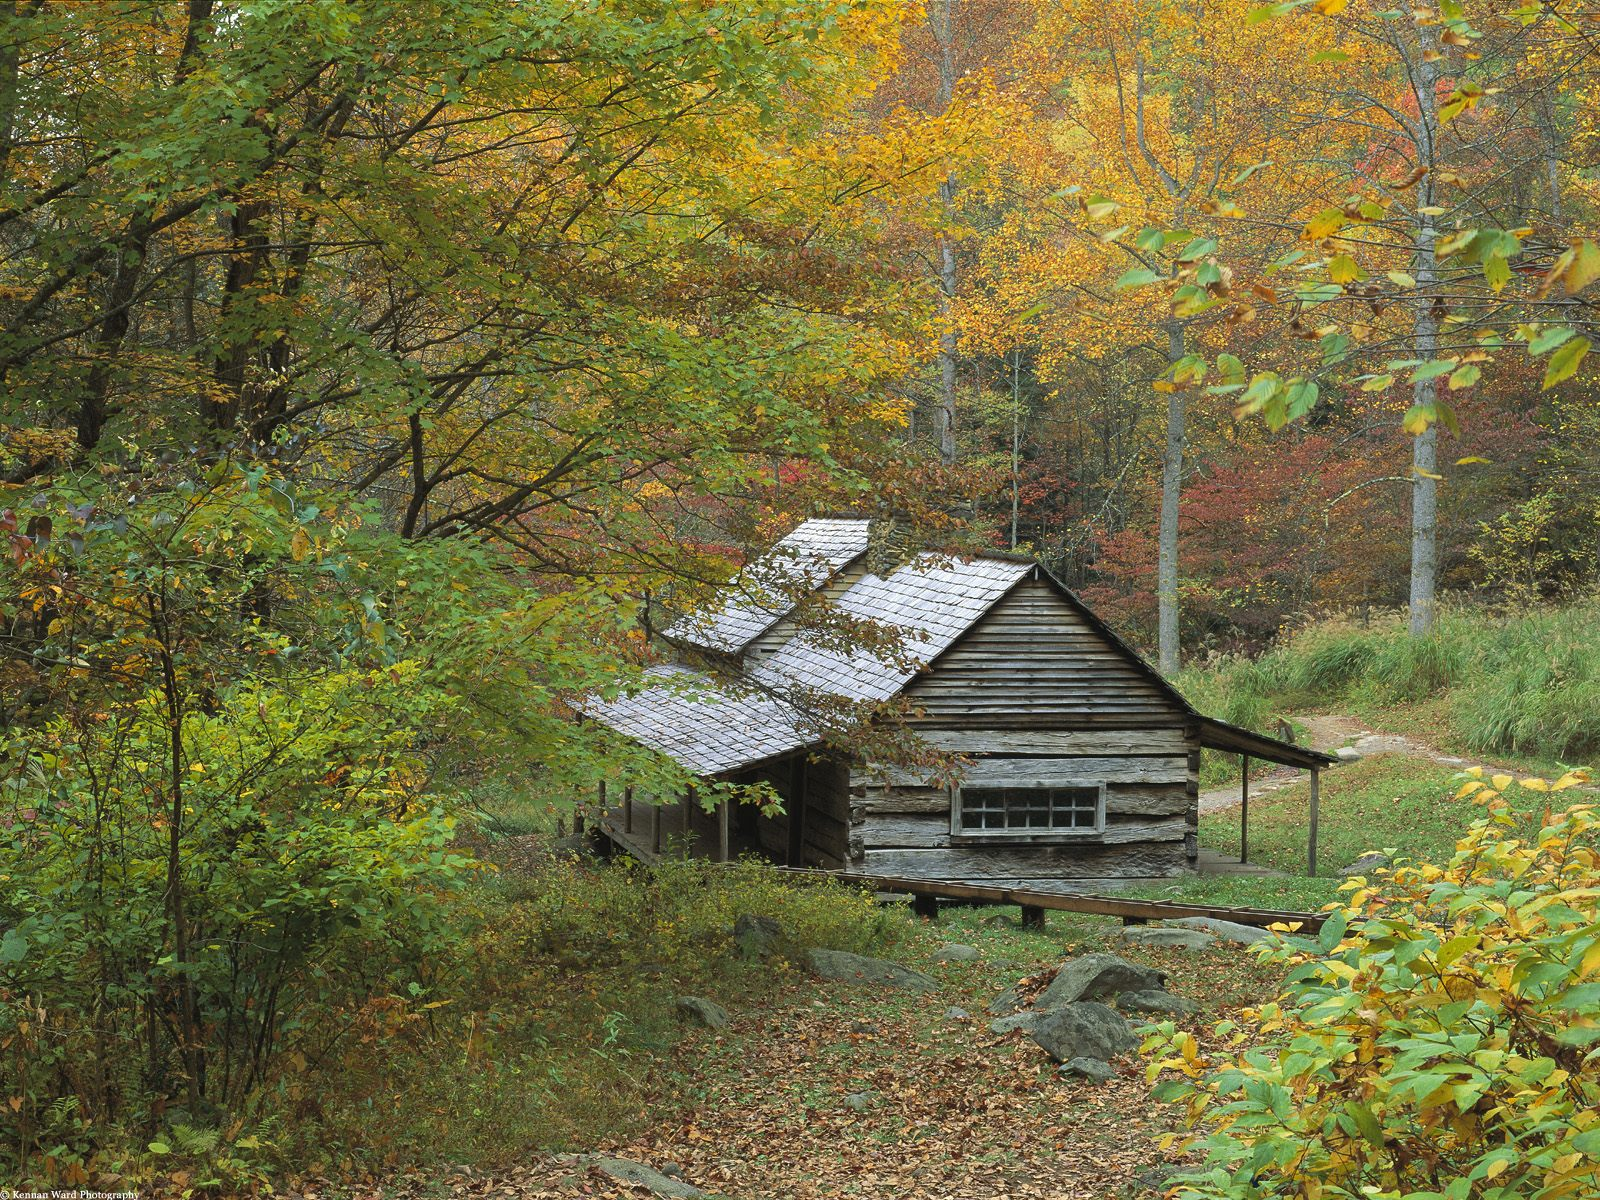 Cabin In The Forest Wallpaper · iBackgroundWallpaper